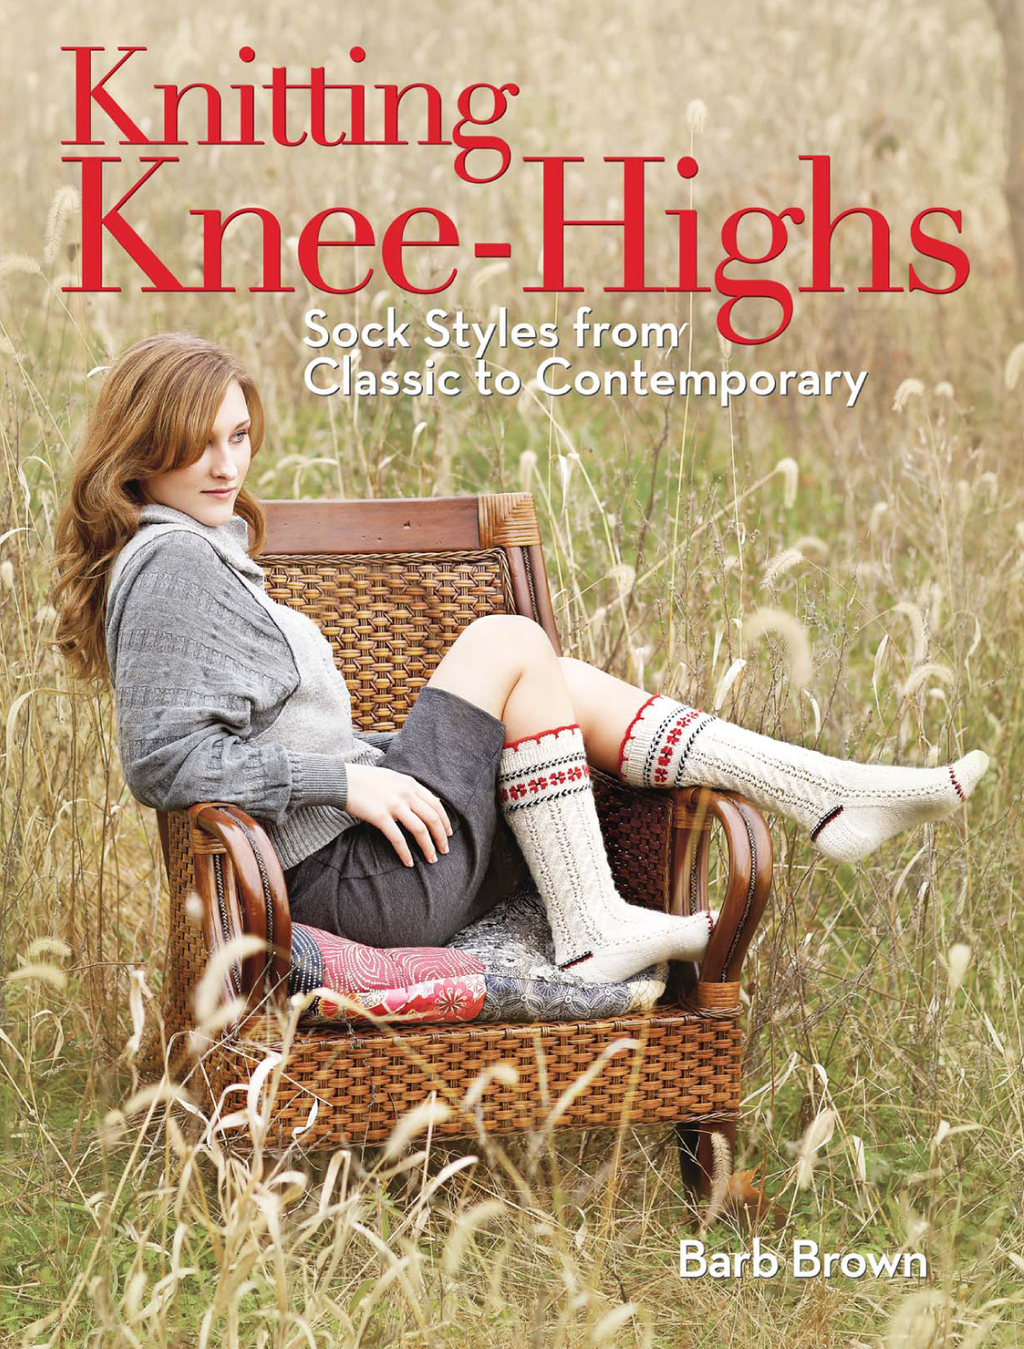 Knitting Knee-Highs Sock Styles from Classic to Contemporary